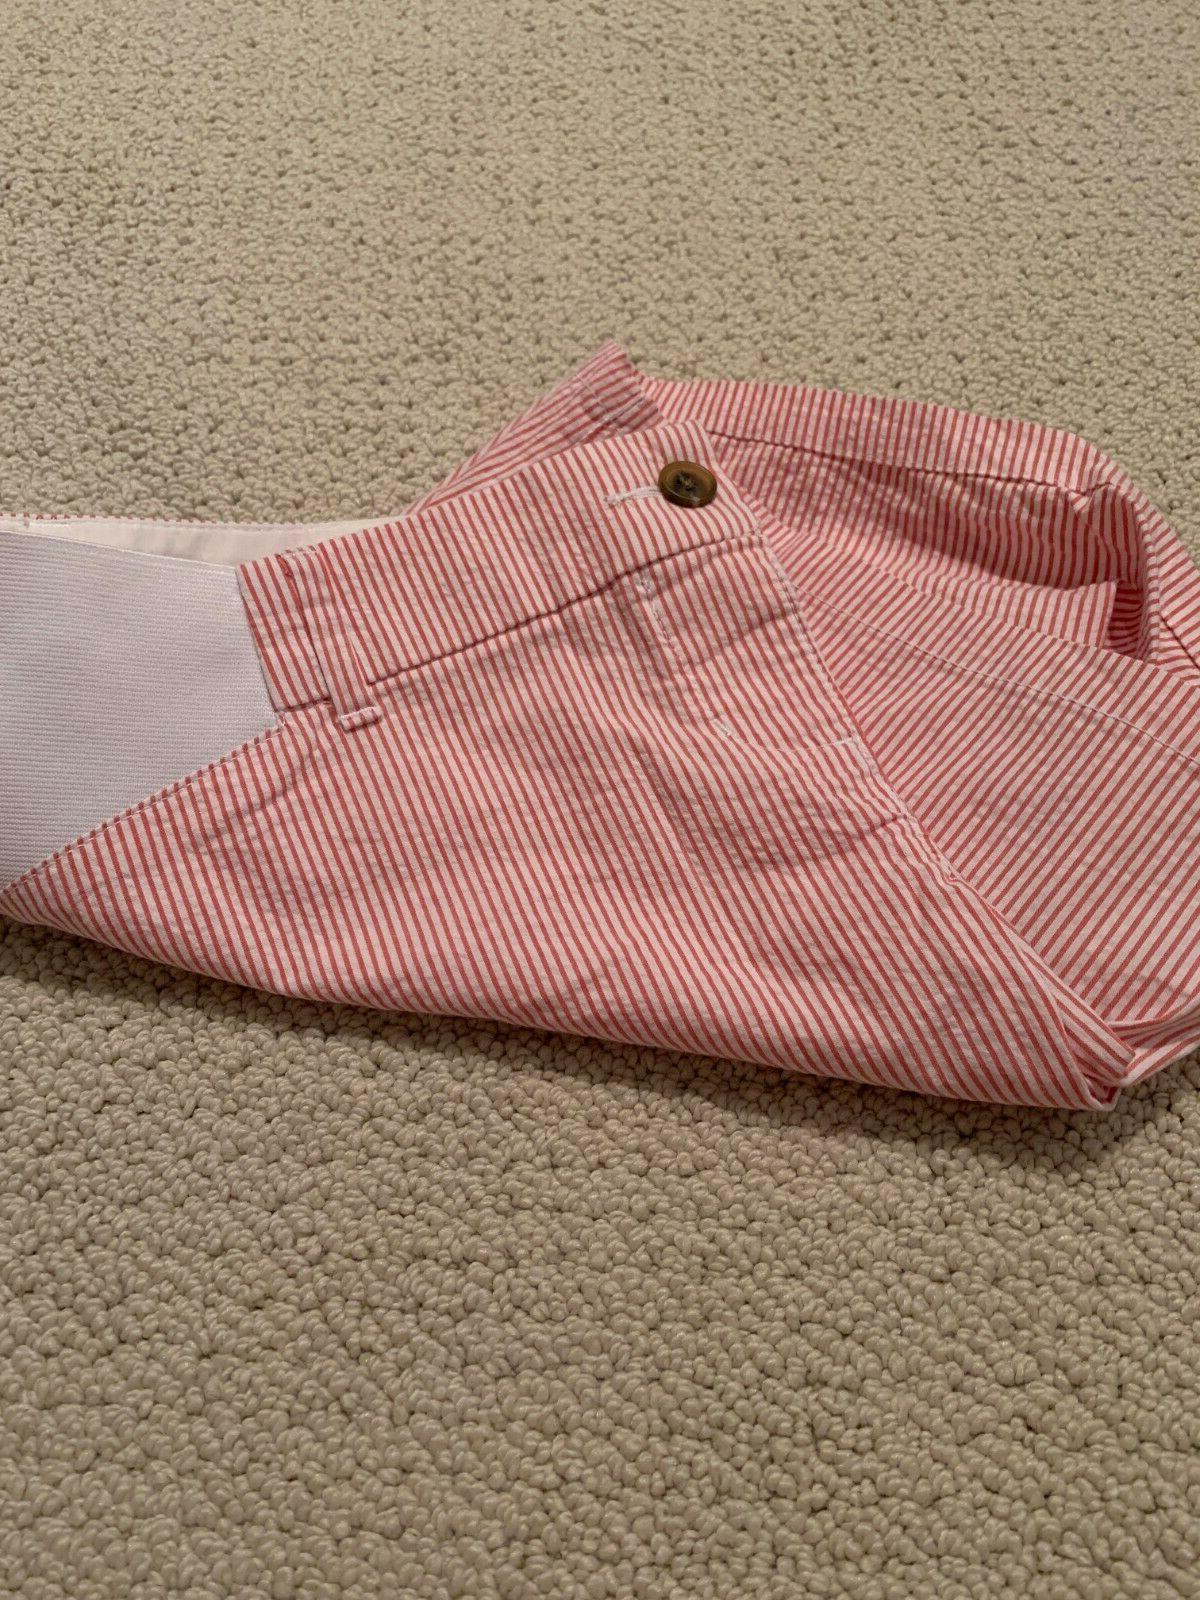 NWT Out Inseam Maternity Side Panel Twill Shorts